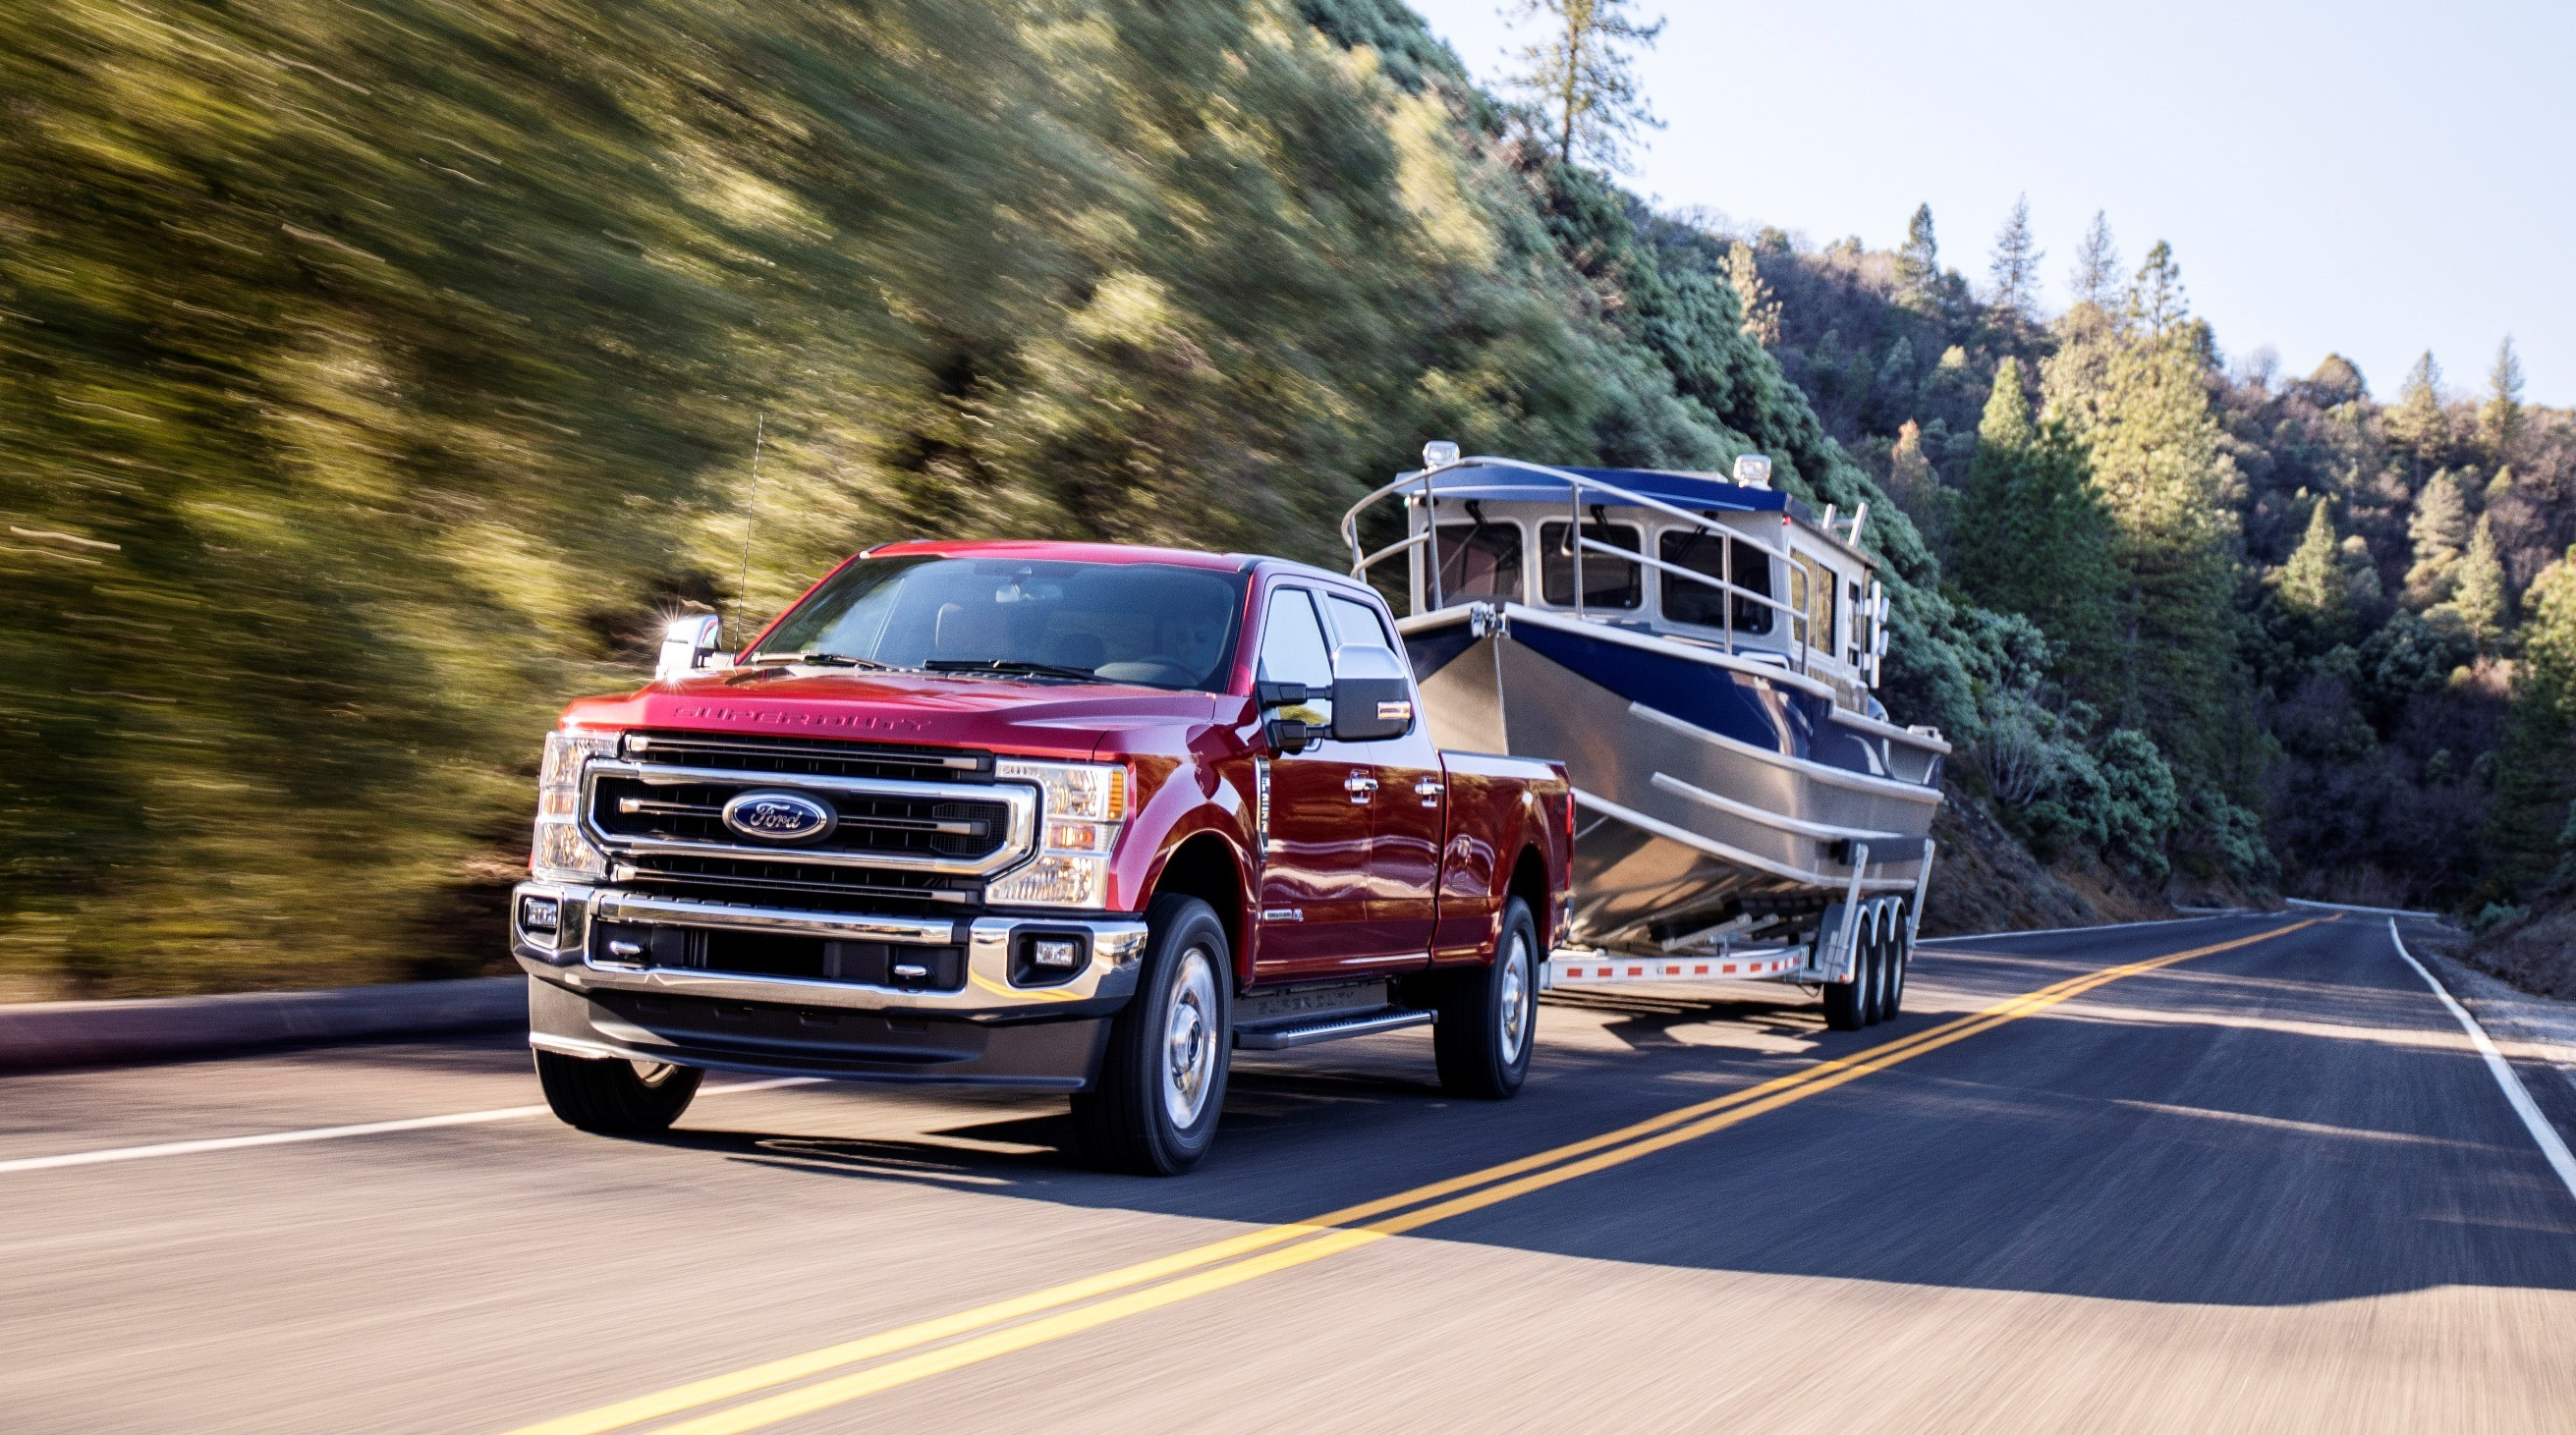 new-73-liter-v8-added-to-2020-ford-f-series-super-duty-lineup_6